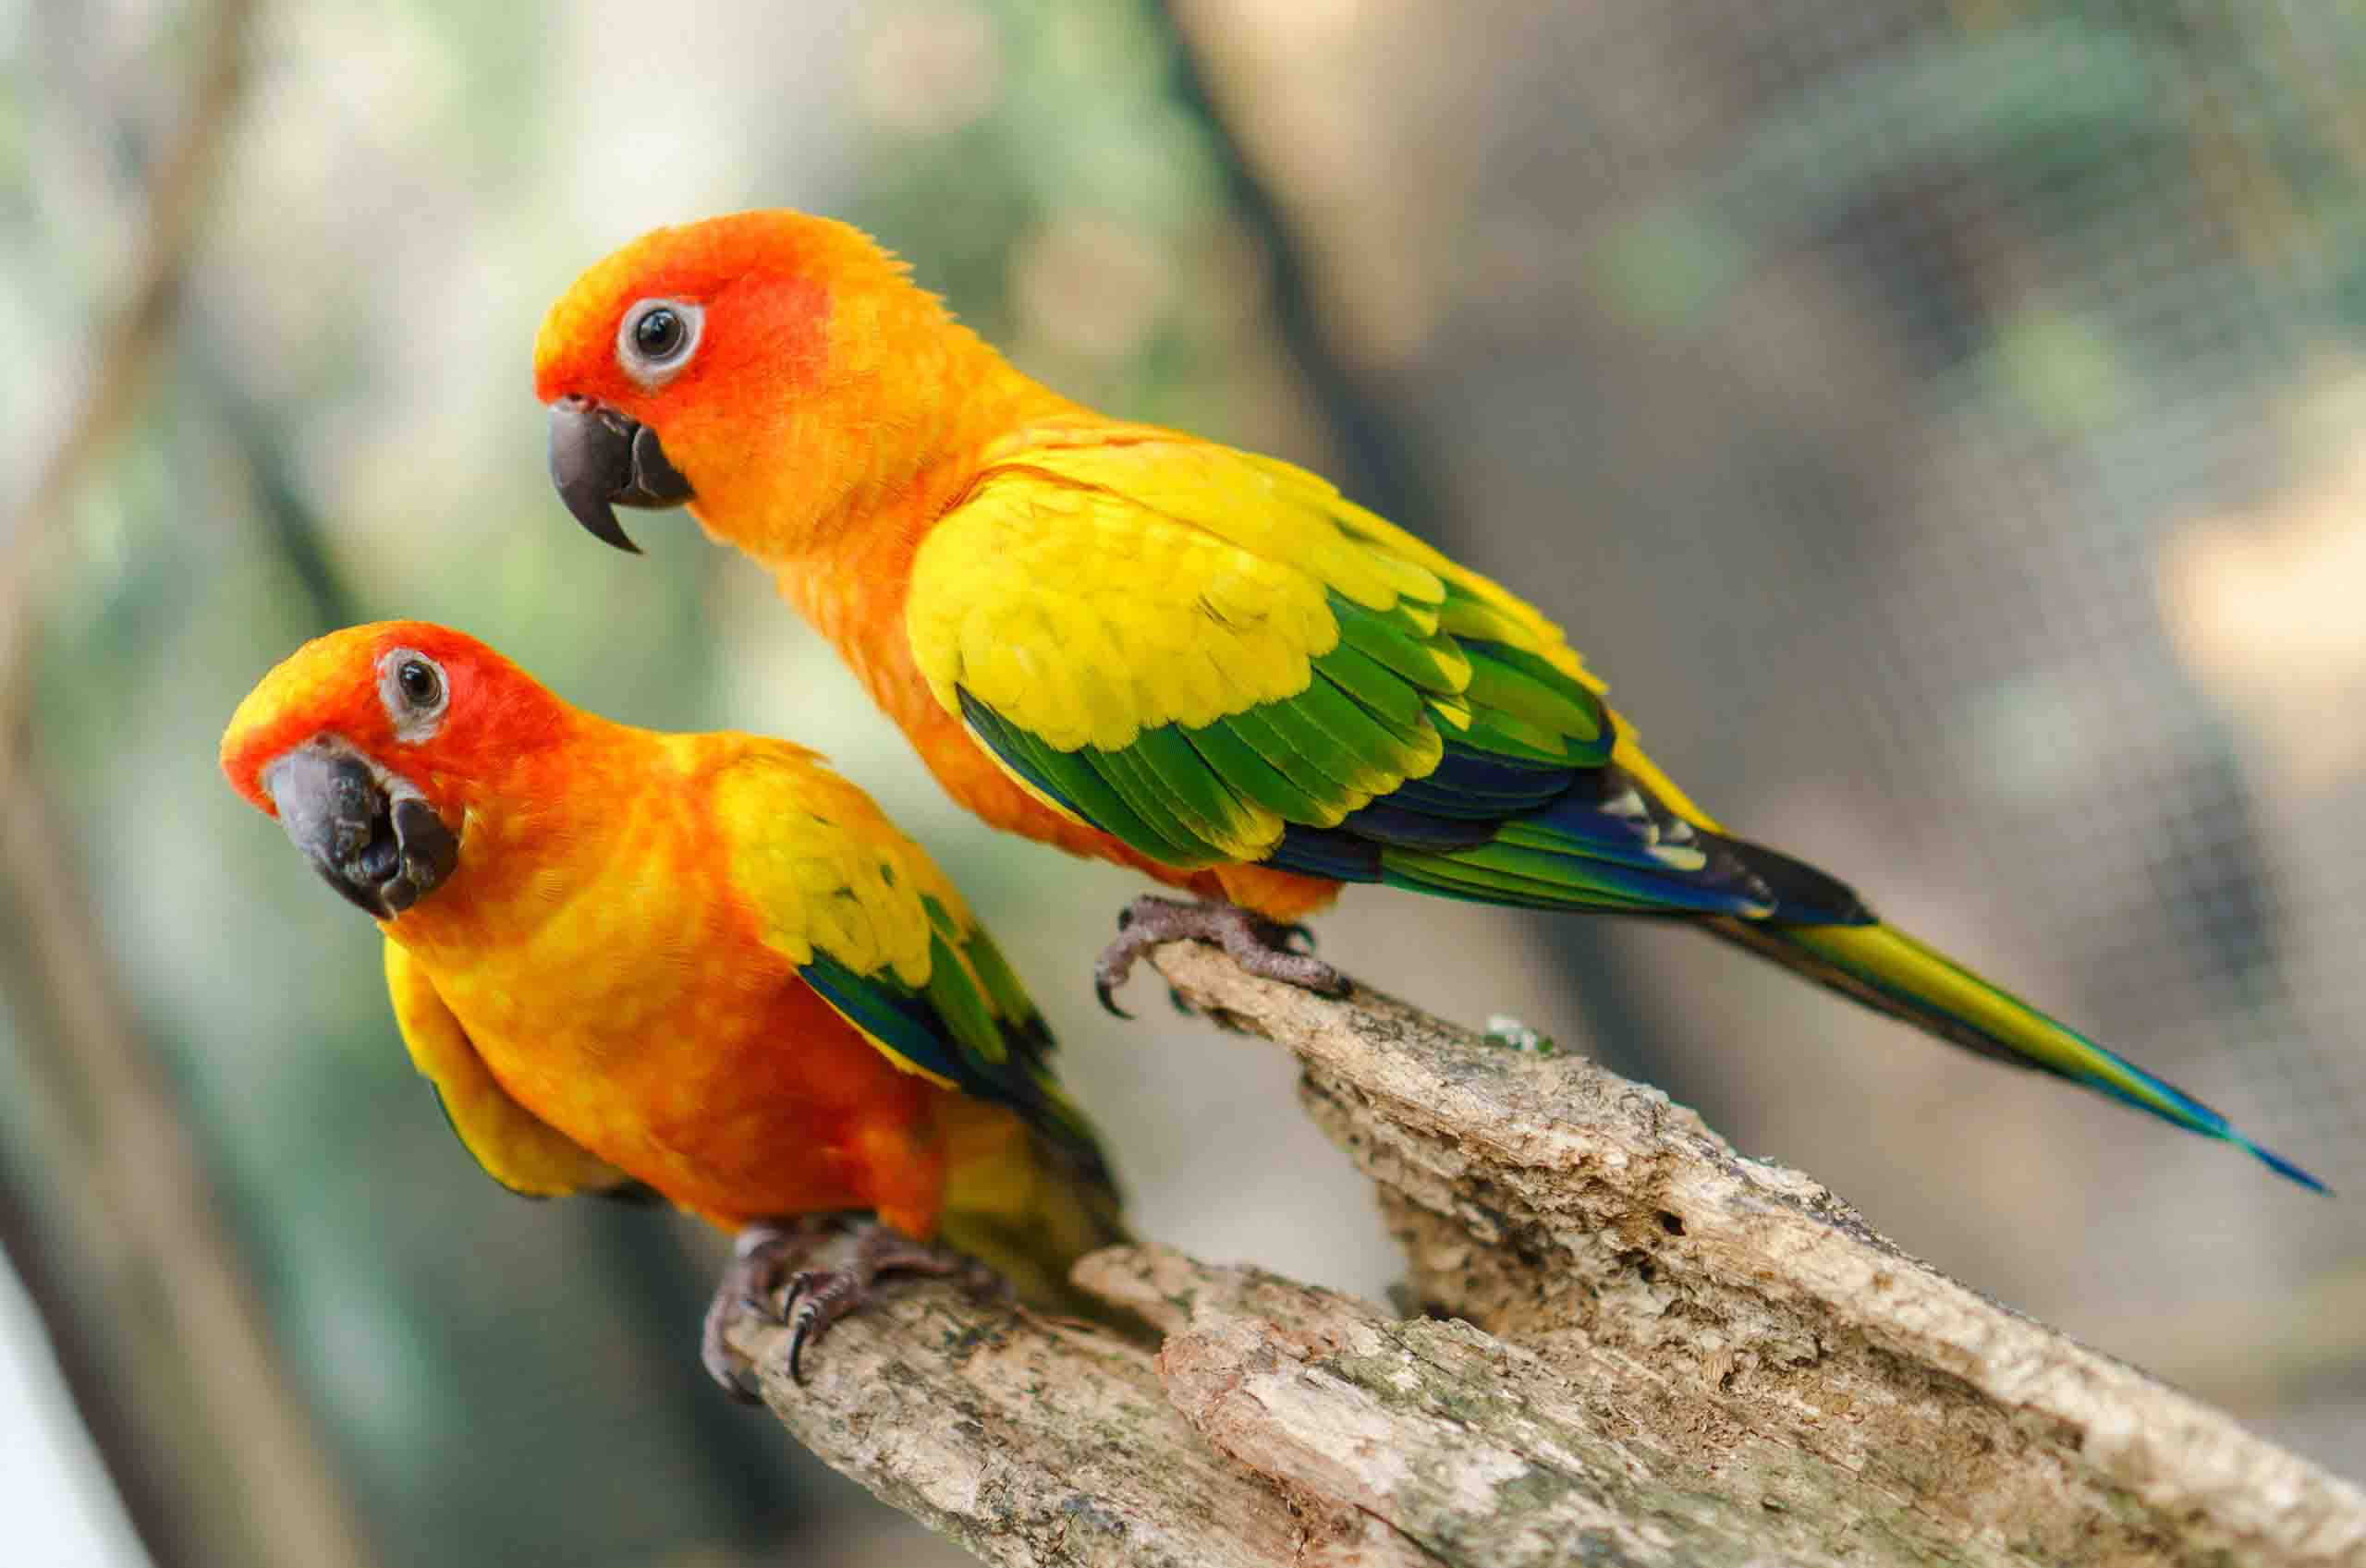 Keeping Birds - Feathered Friends